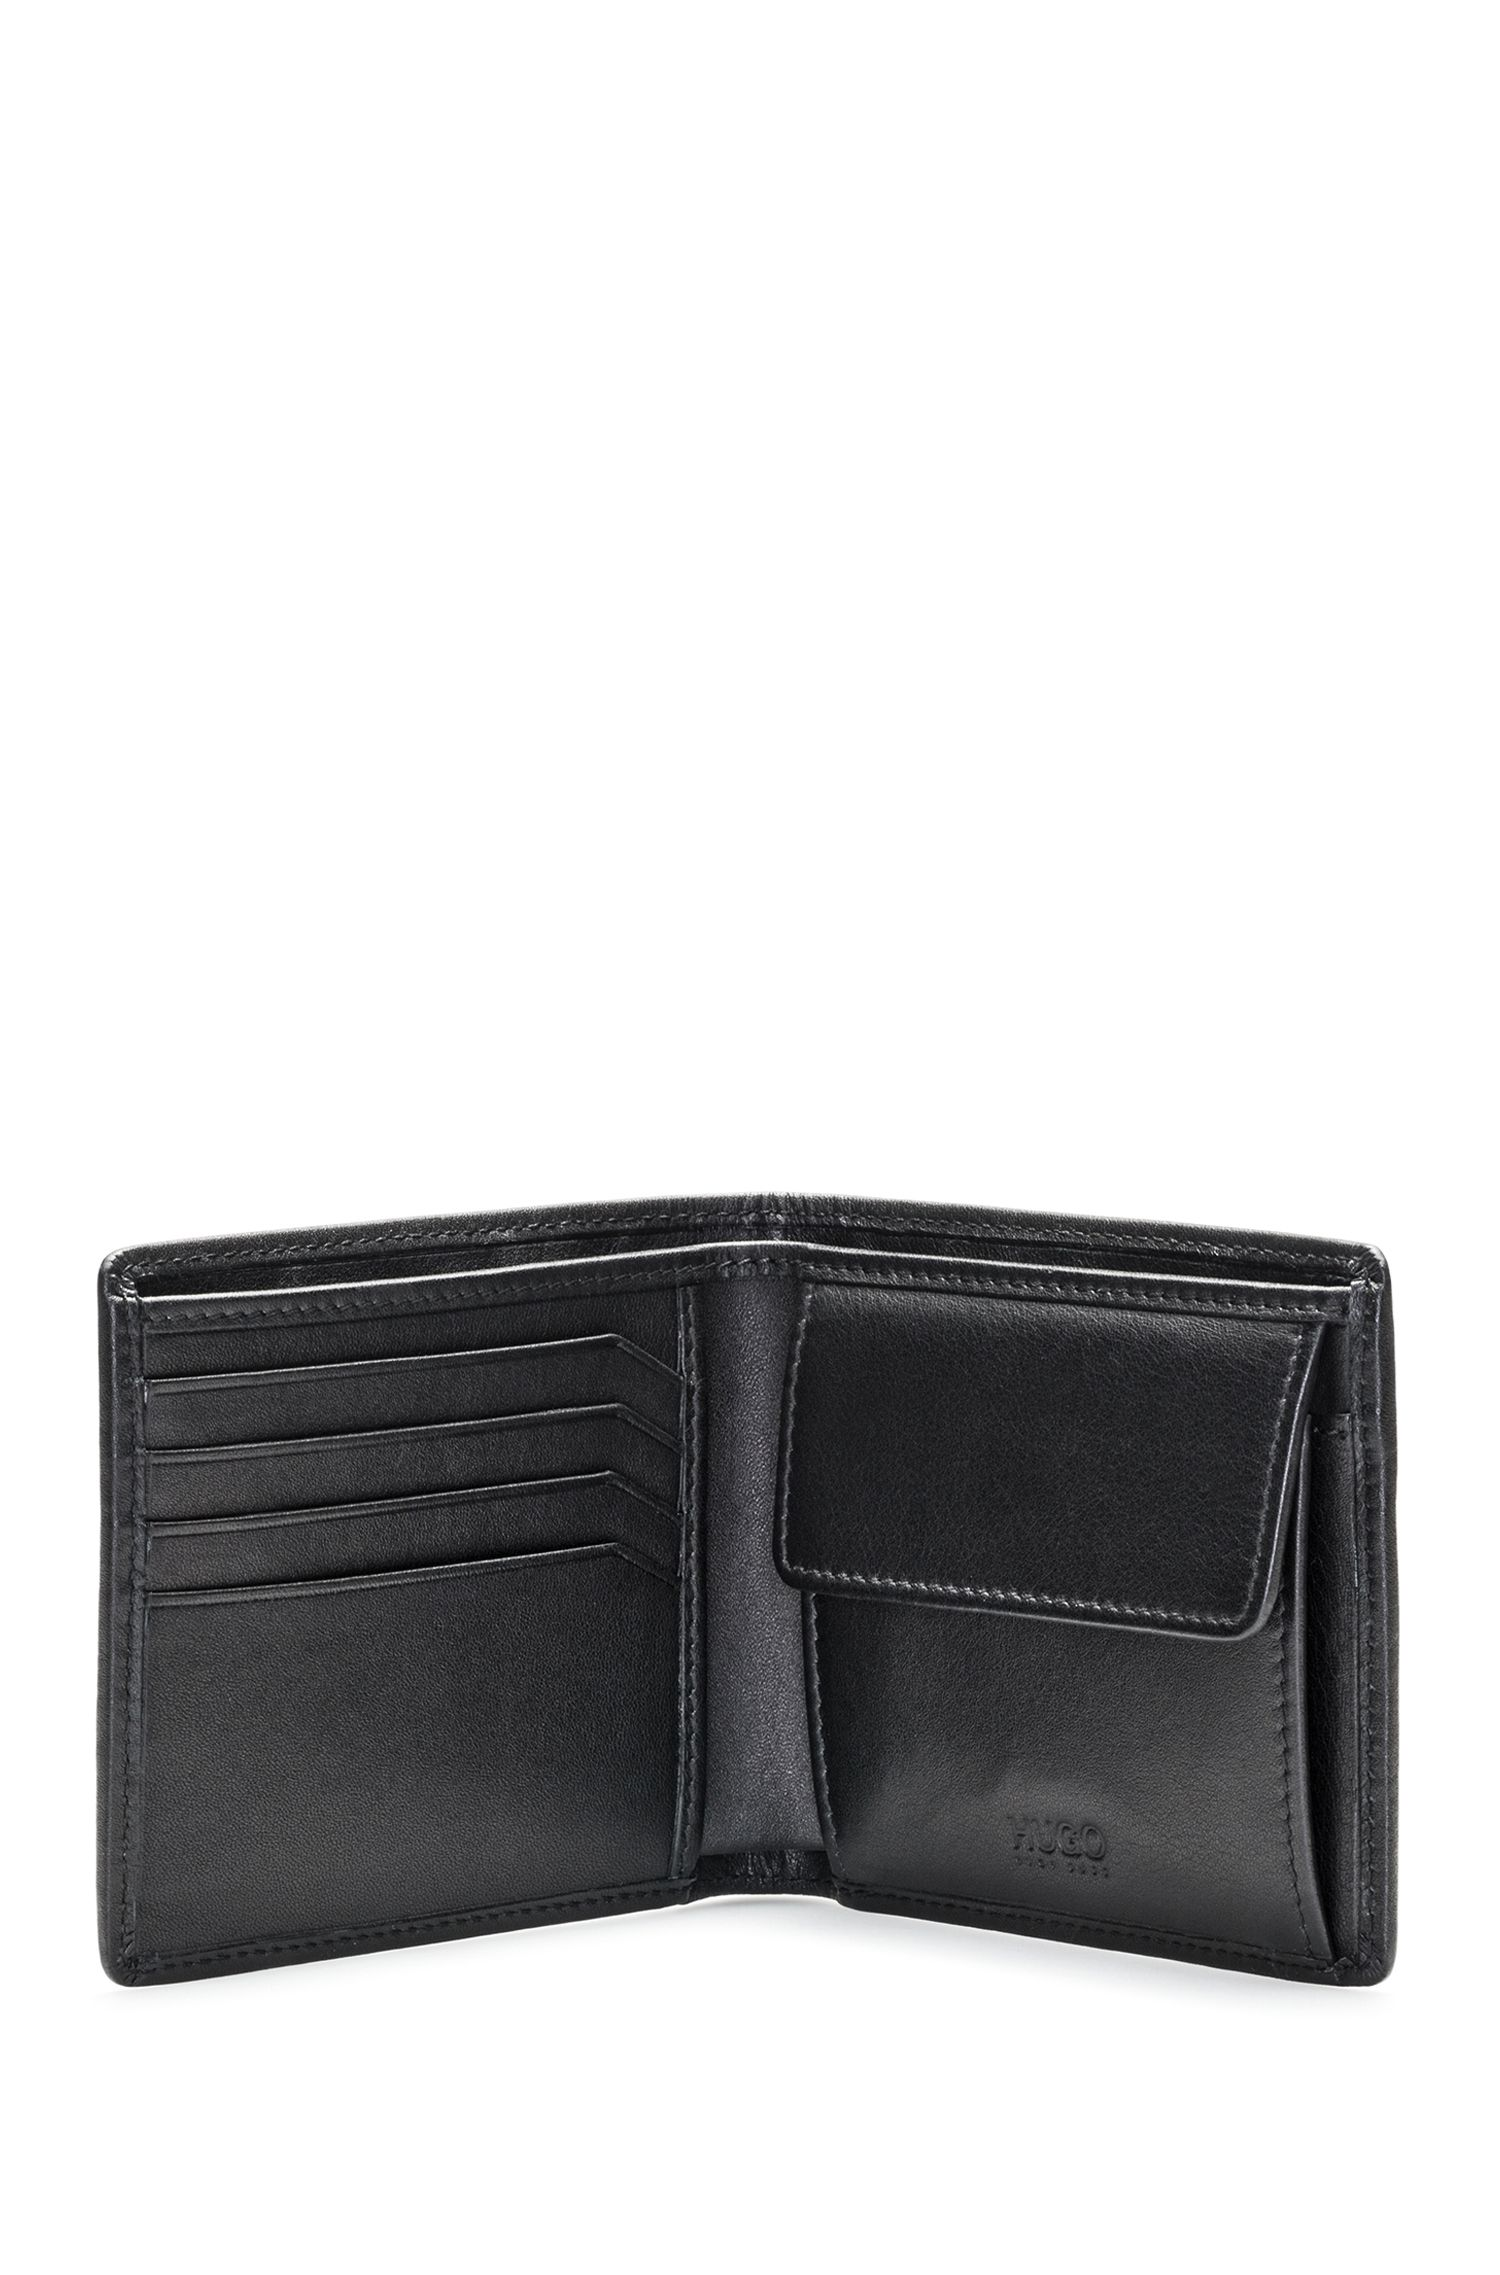 Leather billfold wallet with coin pouch and reverse logo, Black